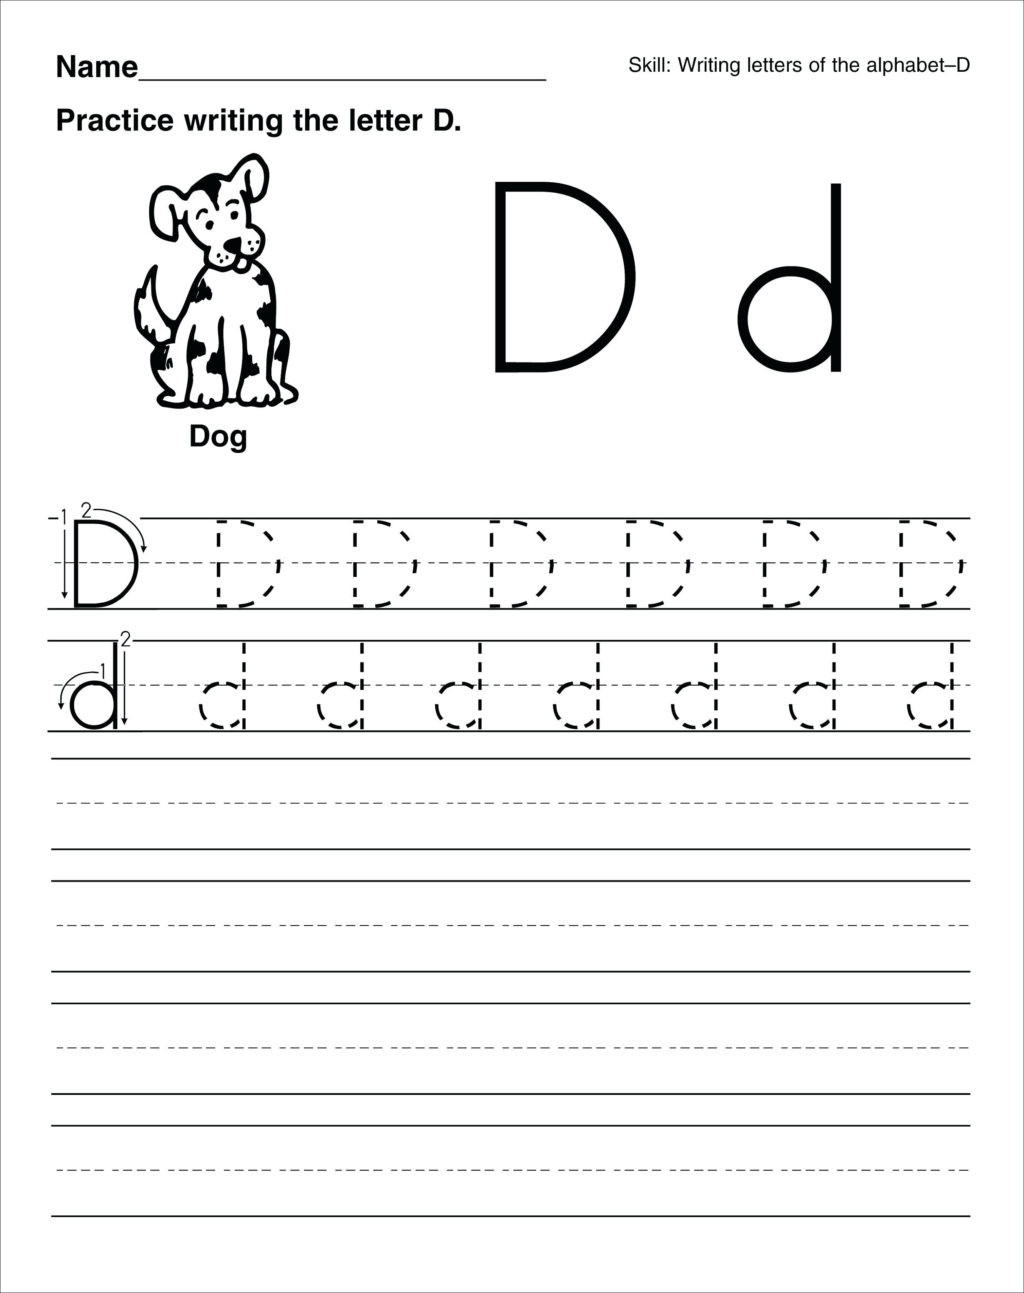 Preschool Letter H Worksheets Worksheet Free Handwriting Activity Sheets for Children